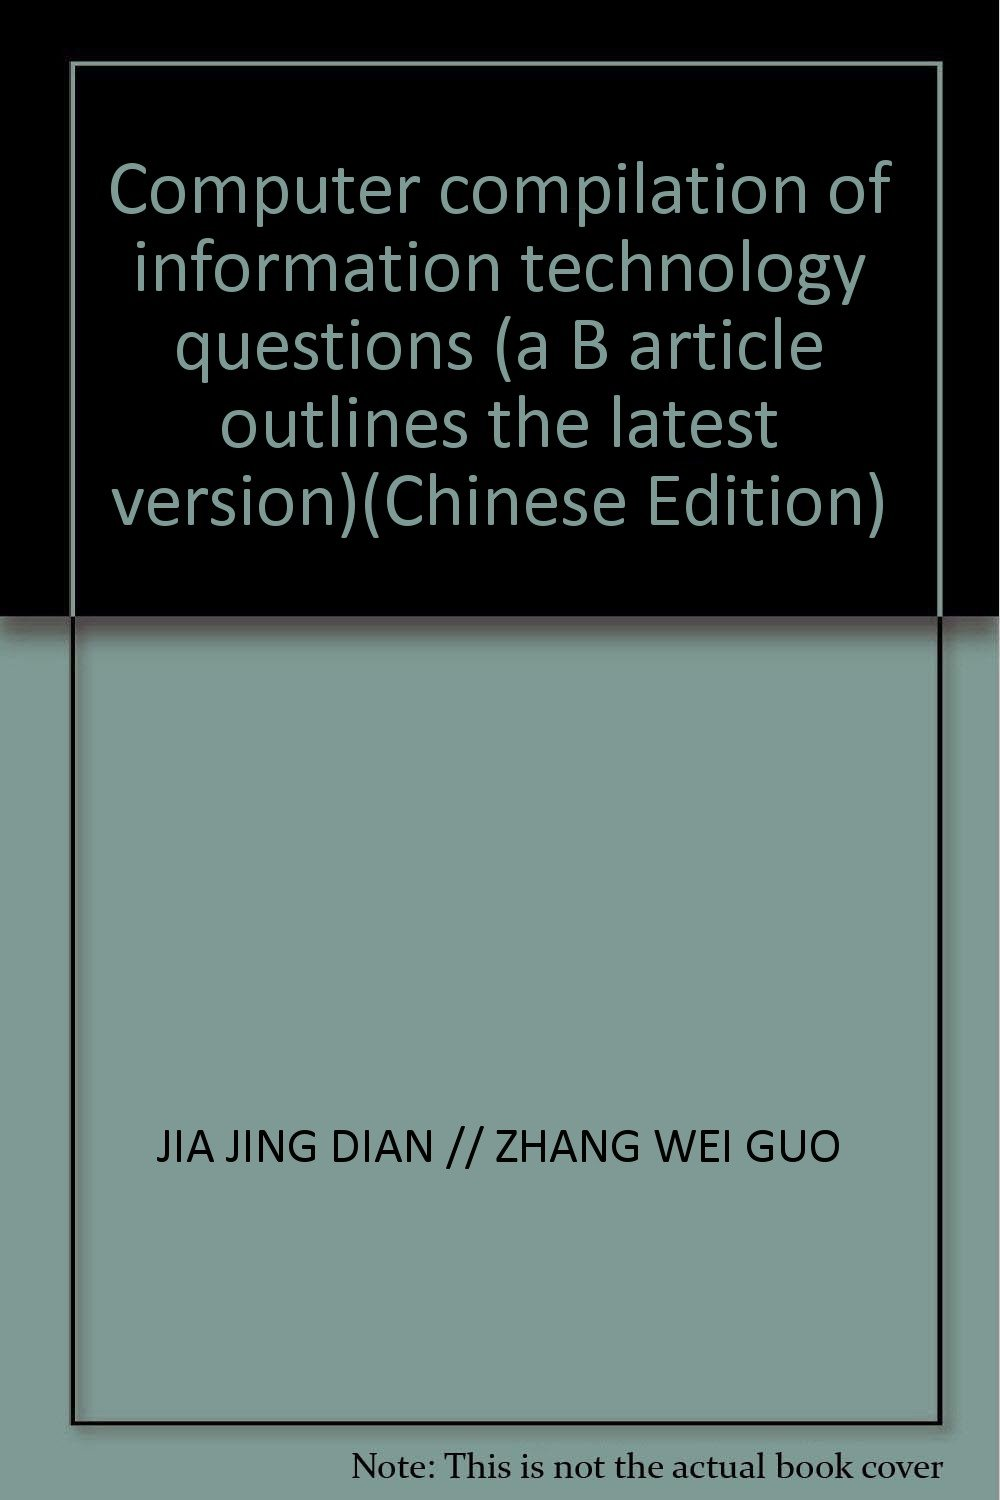 Download Computer compilation of information technology questions (a B article outlines the latest version)(Chinese Edition) ebook